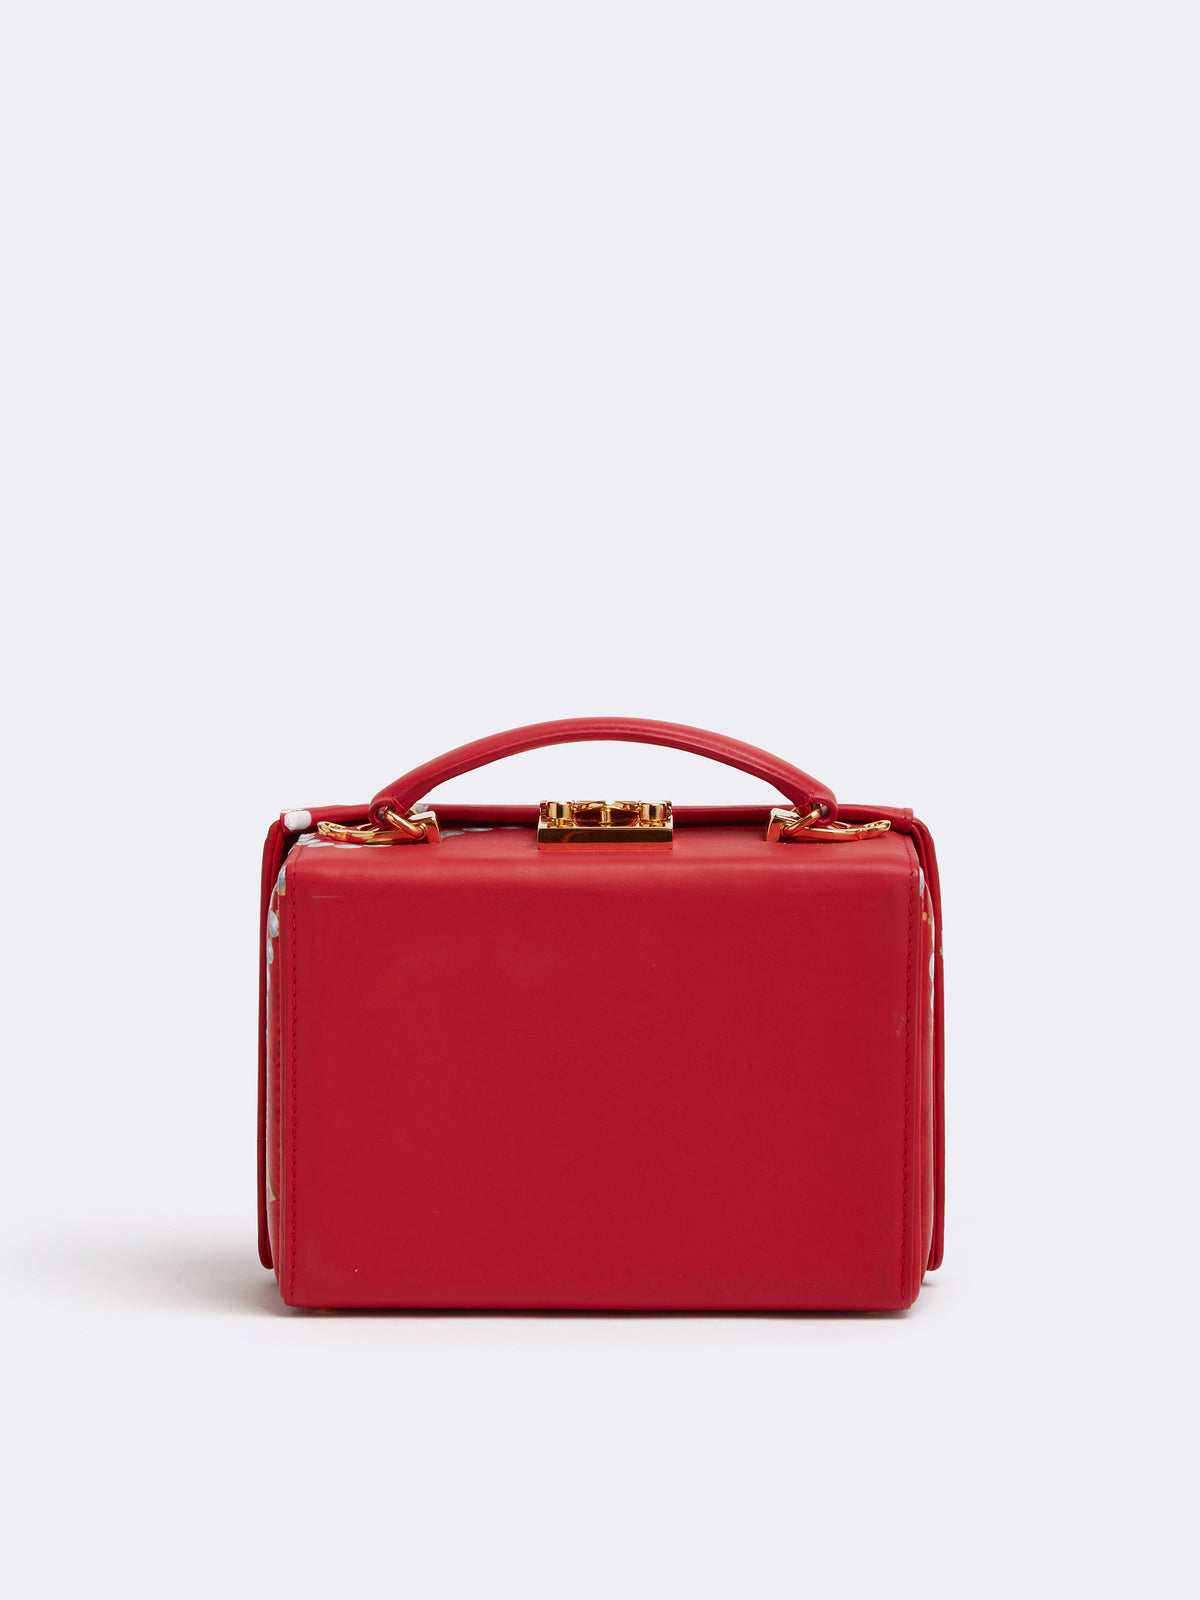 Sophie Matisse x Mark Cross Grace Small Leather Box Bag Smooth Calf MC Red / Pearl Back